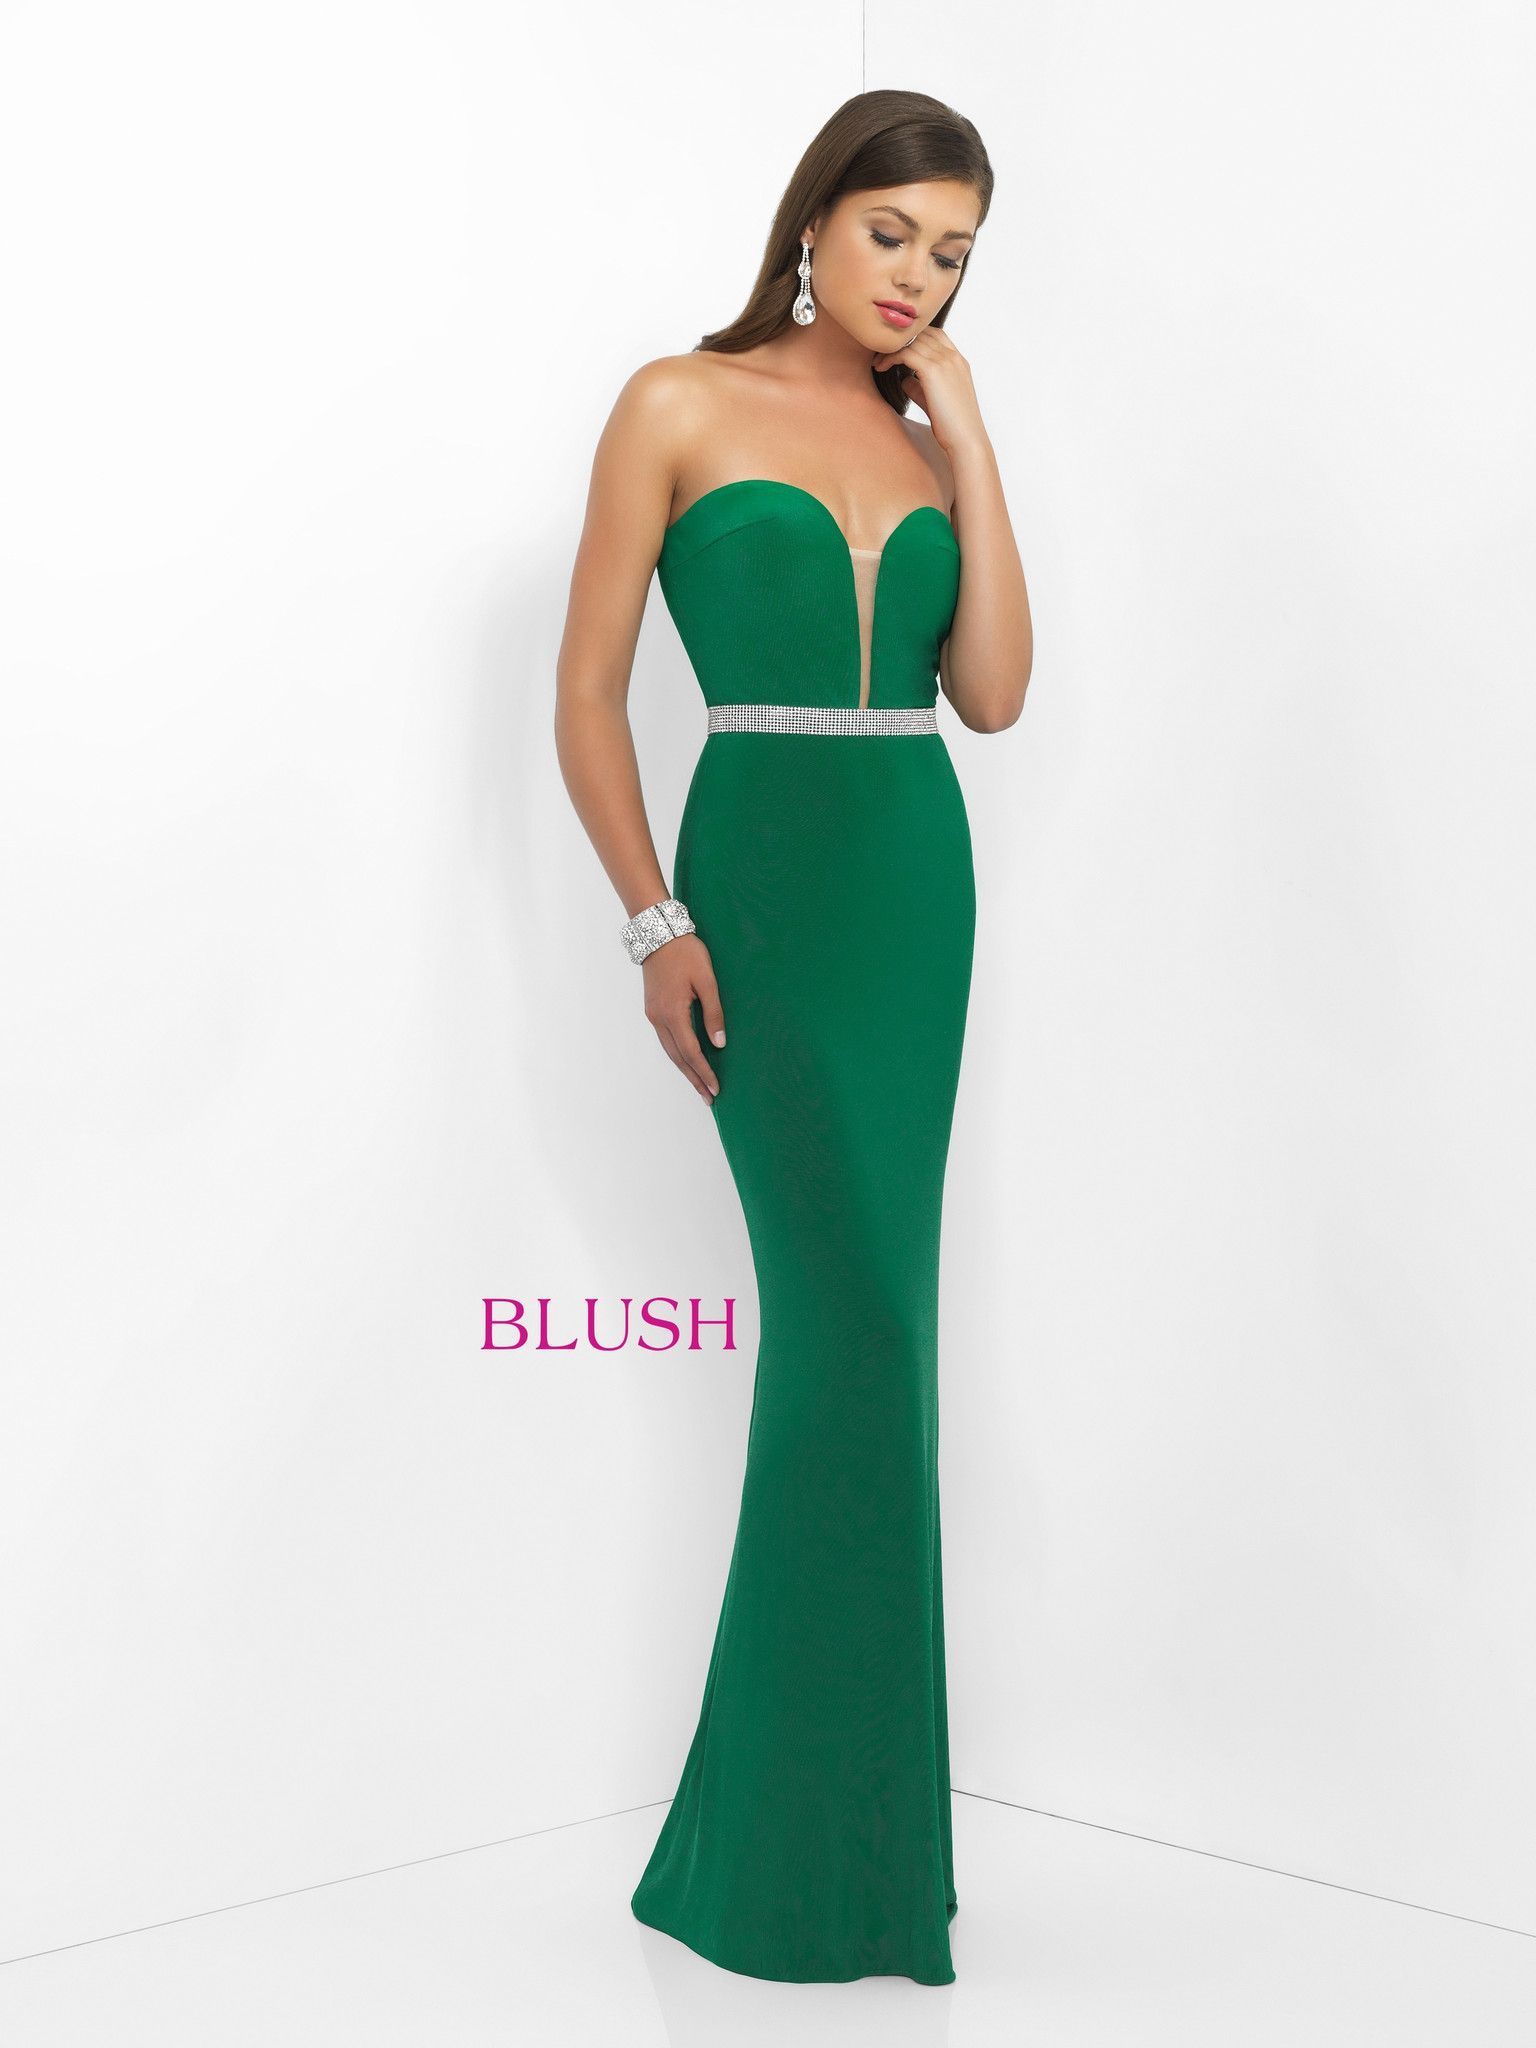 Blush Prom 11010 Emerald | Products | Pinterest